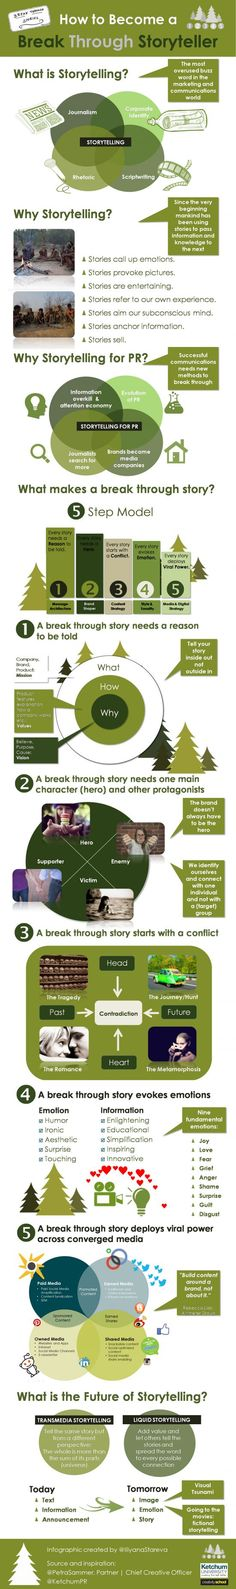 How to Become a Break Through Storyteller #Infographic #Storytelling Confira as nossas recomendações!